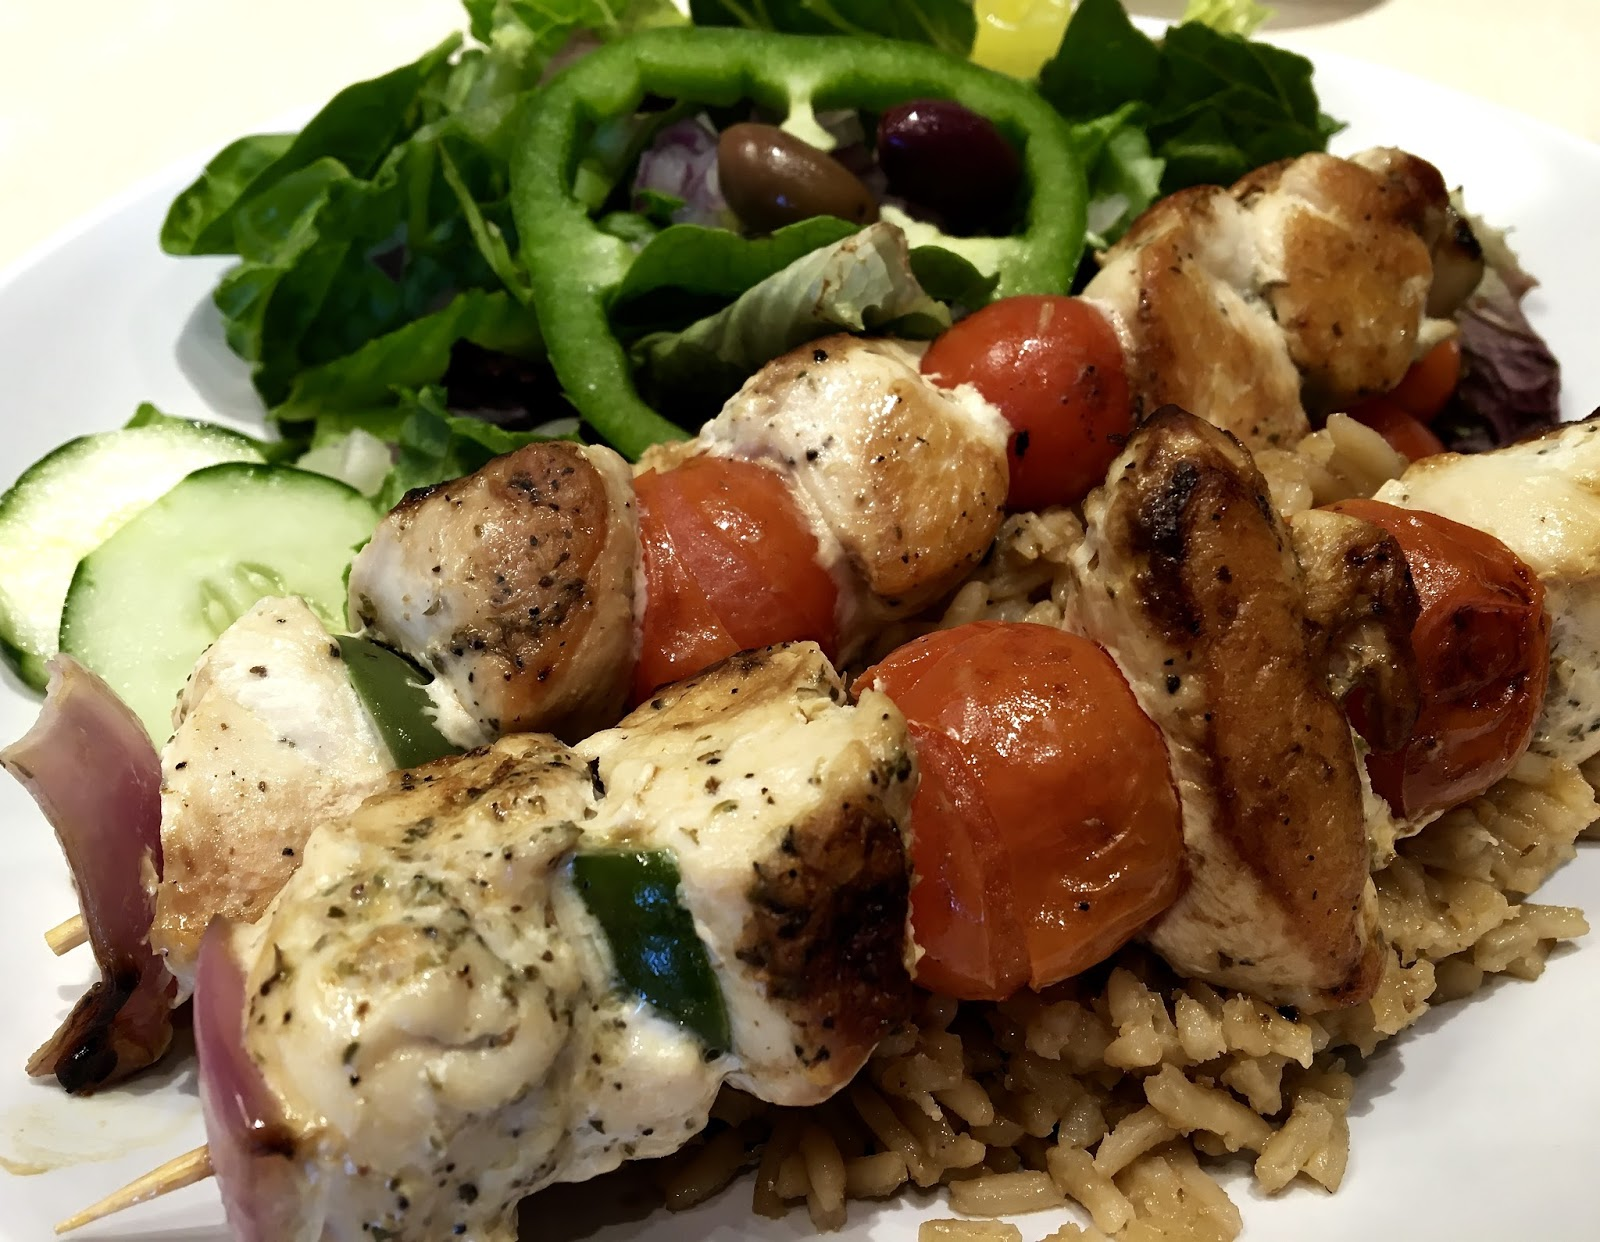 The Gluten Amp Dairy Free Review Blog Zoe S Kitchen Review